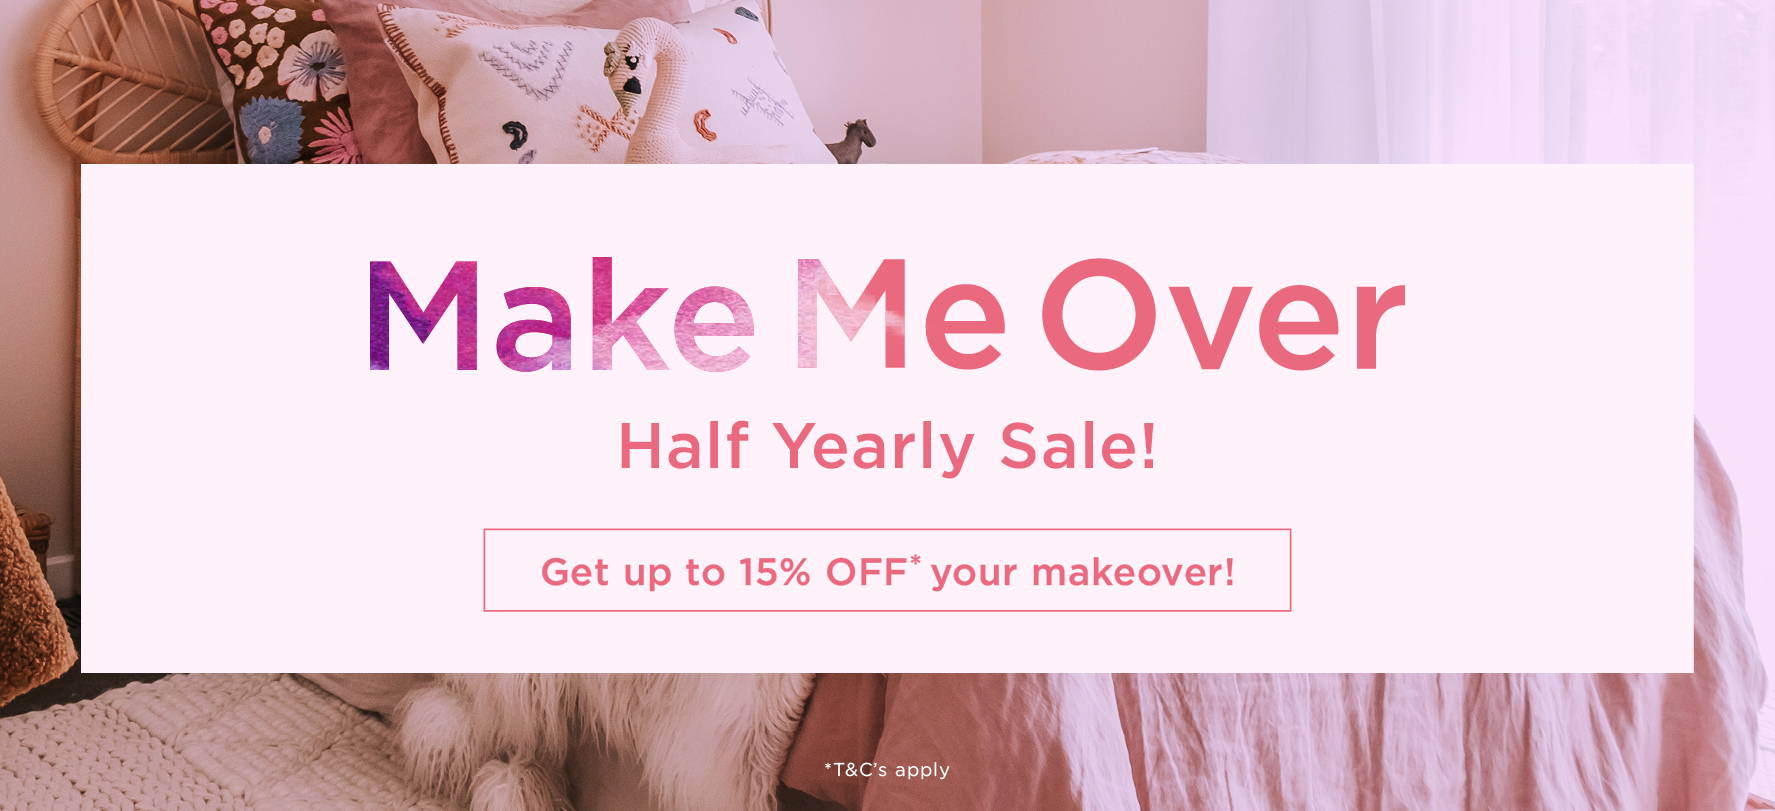 Make Me Over Half Yearly Sale